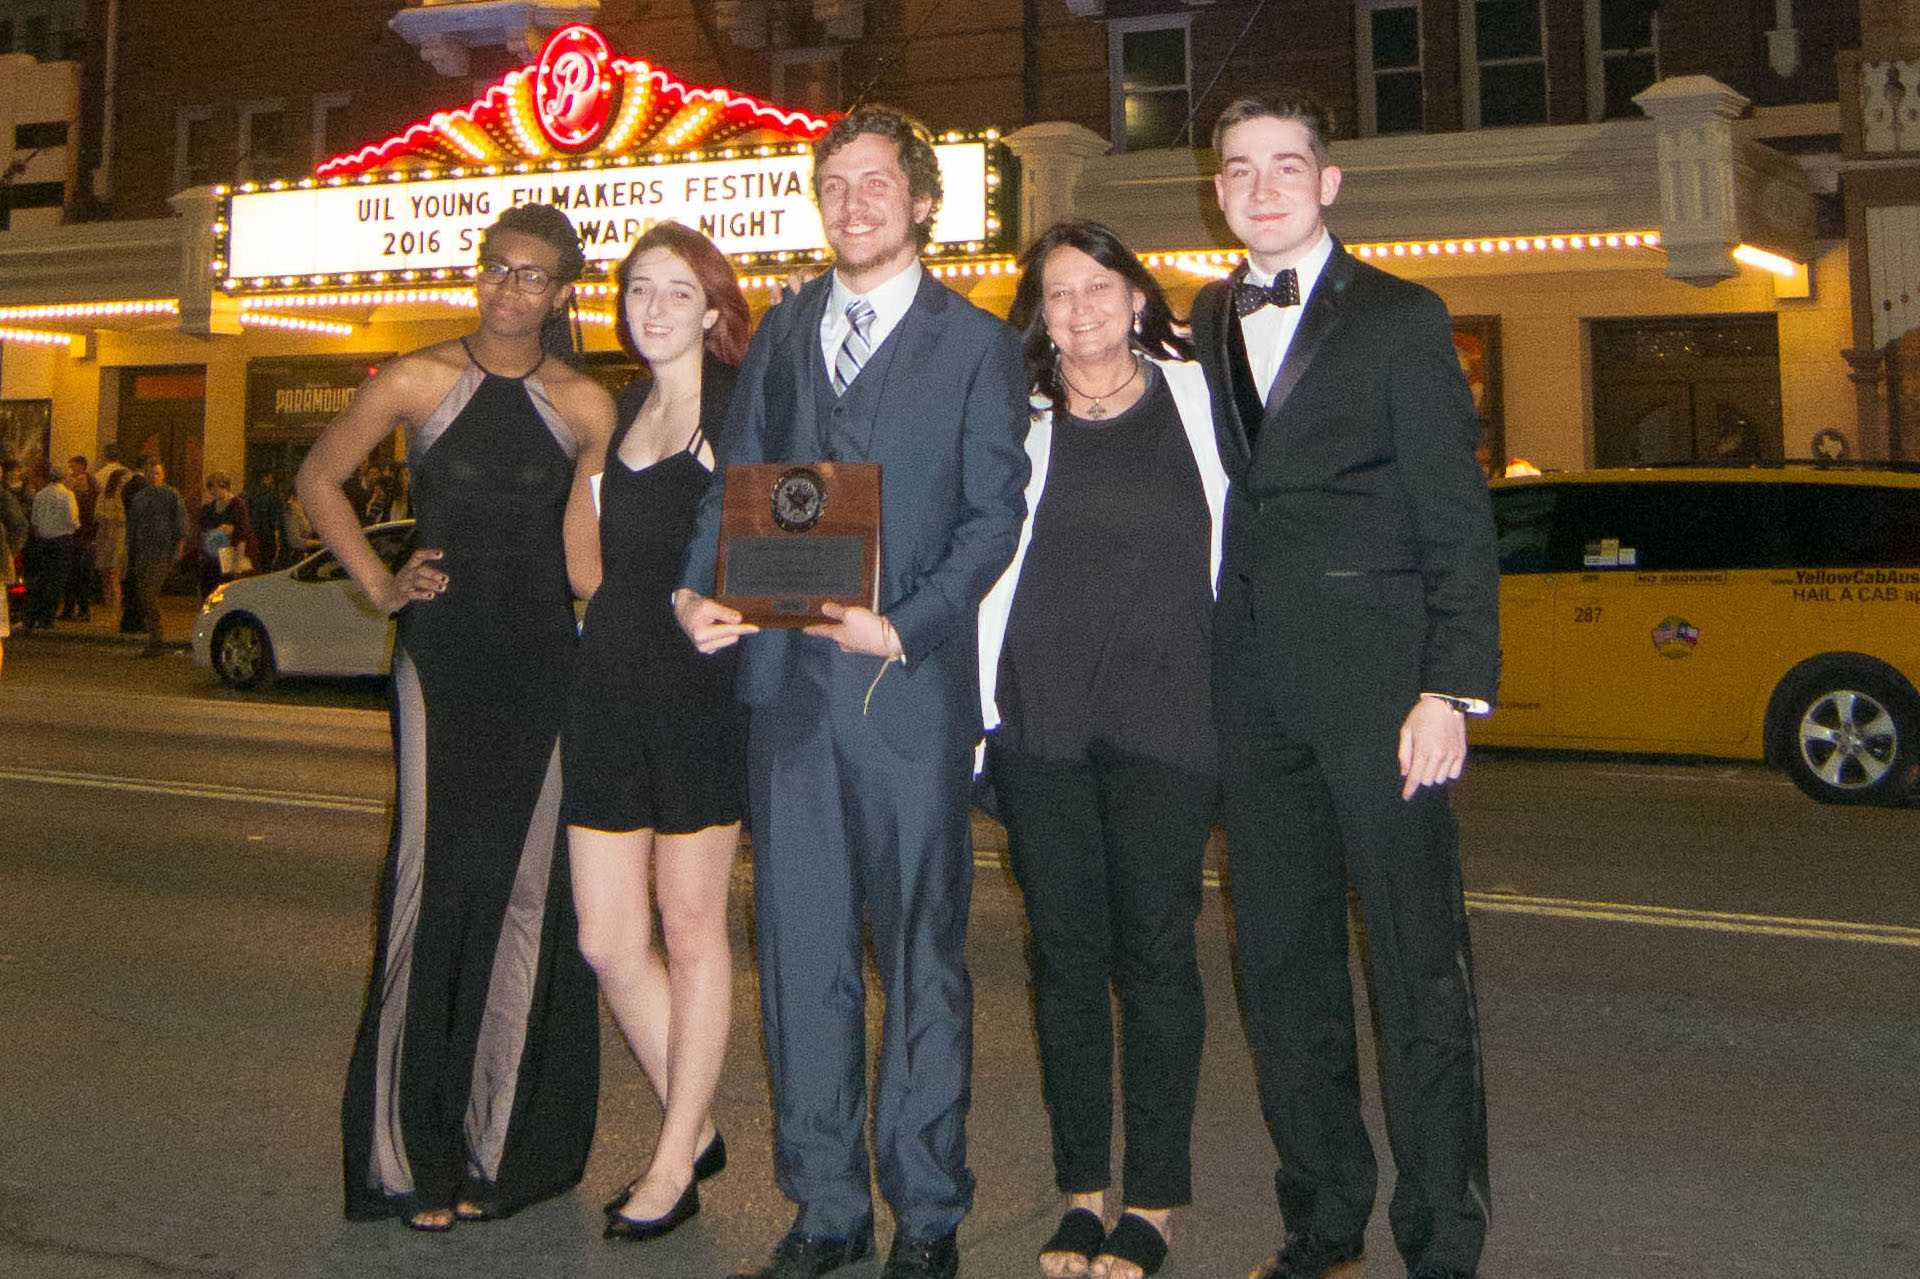 From left to right: Alexandria Dave, Daryn Crowninshield, Brett Bellamy, Coach Bradford, and Cole Andrews pose with their award in front of the Paramount Theatre in Austin, Texas.